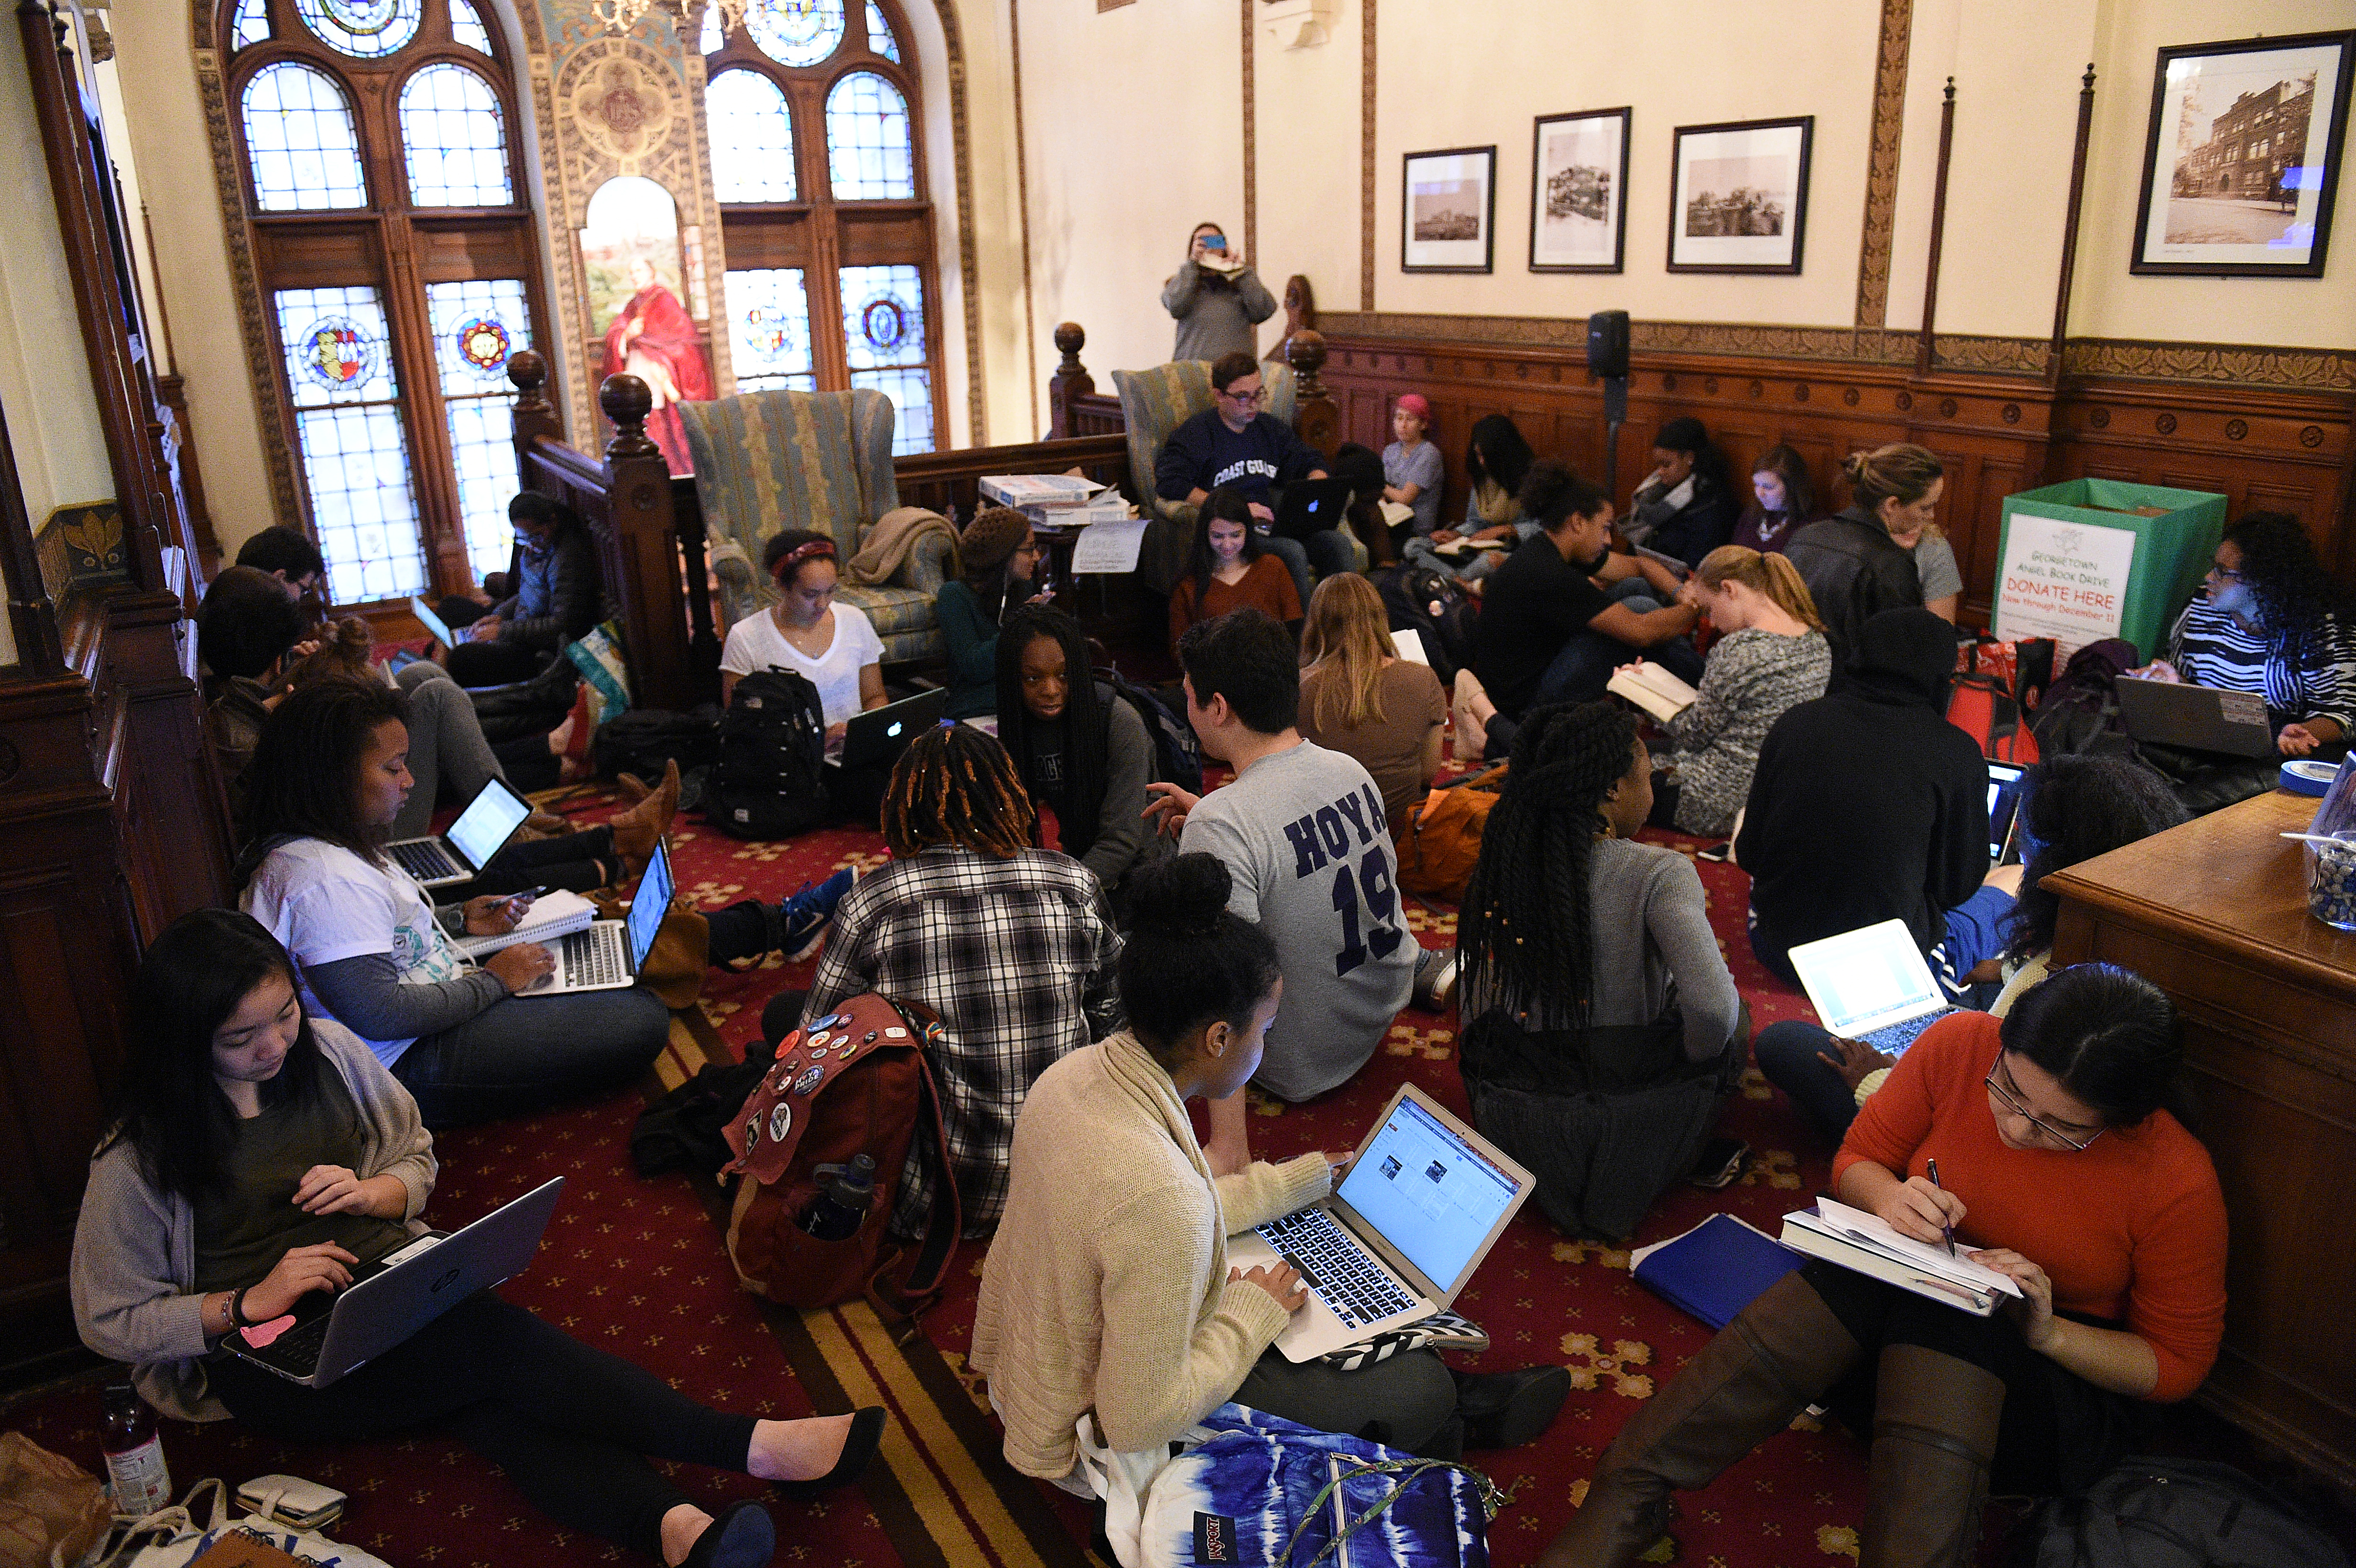 Around 30 students sit in in front of the office of John J. DeGioia, president of Georgetown University in Washington, D.C., on November 13, 2015. The sit in was in solidarity with other student protests throughout the country addressing racial discrimination on campus. The students also demanded the change of the name of Mulledy Hall on campus. The hall was named after former University President Fr. Thomas F. Mulledy, S.J., who completed his term as president in of Georgetown University in 1838. After his term, Mulledy authorized the sale of 272 slaves owned by the Society of Jesus in Maryland.